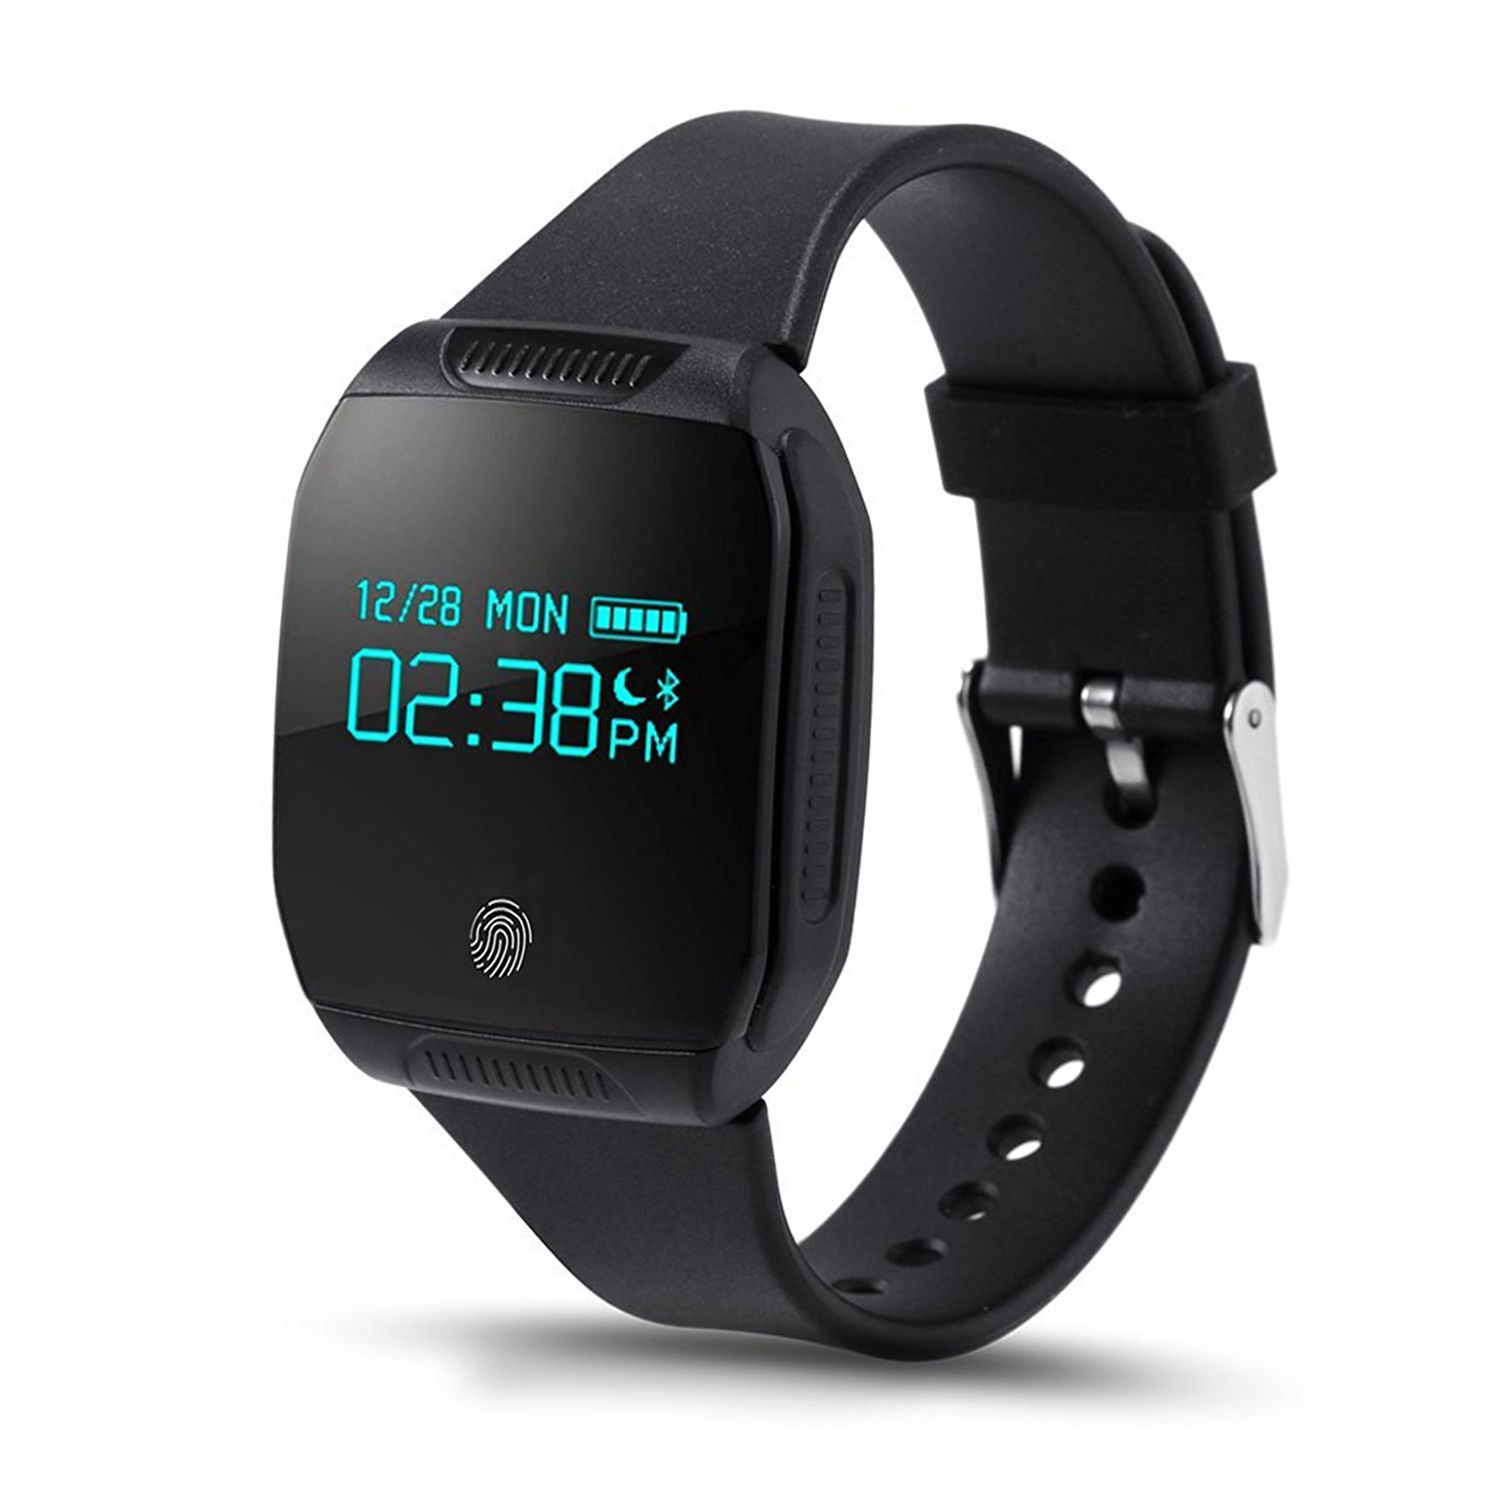 bluetooth fashion ios rate smart best sport product heart fitness women newest android for smartwatch tracker watch wristwatch ladies watches monitor